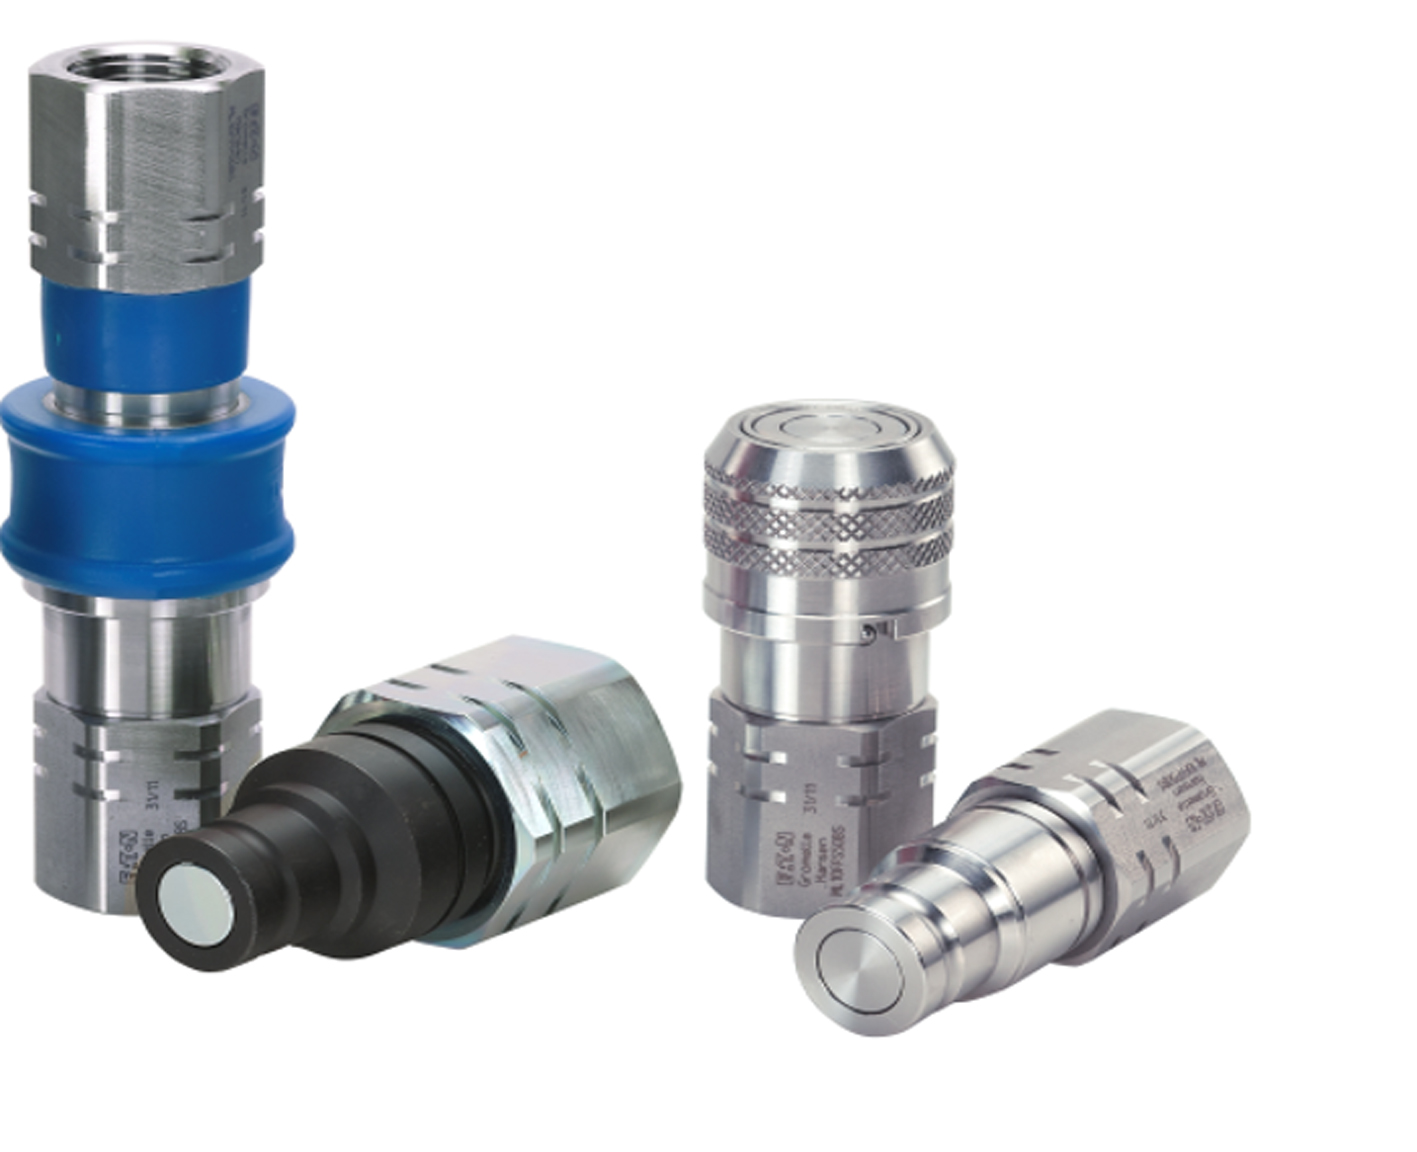 Eaton's Flat Face quick disconnect couplings - Power Transmission World